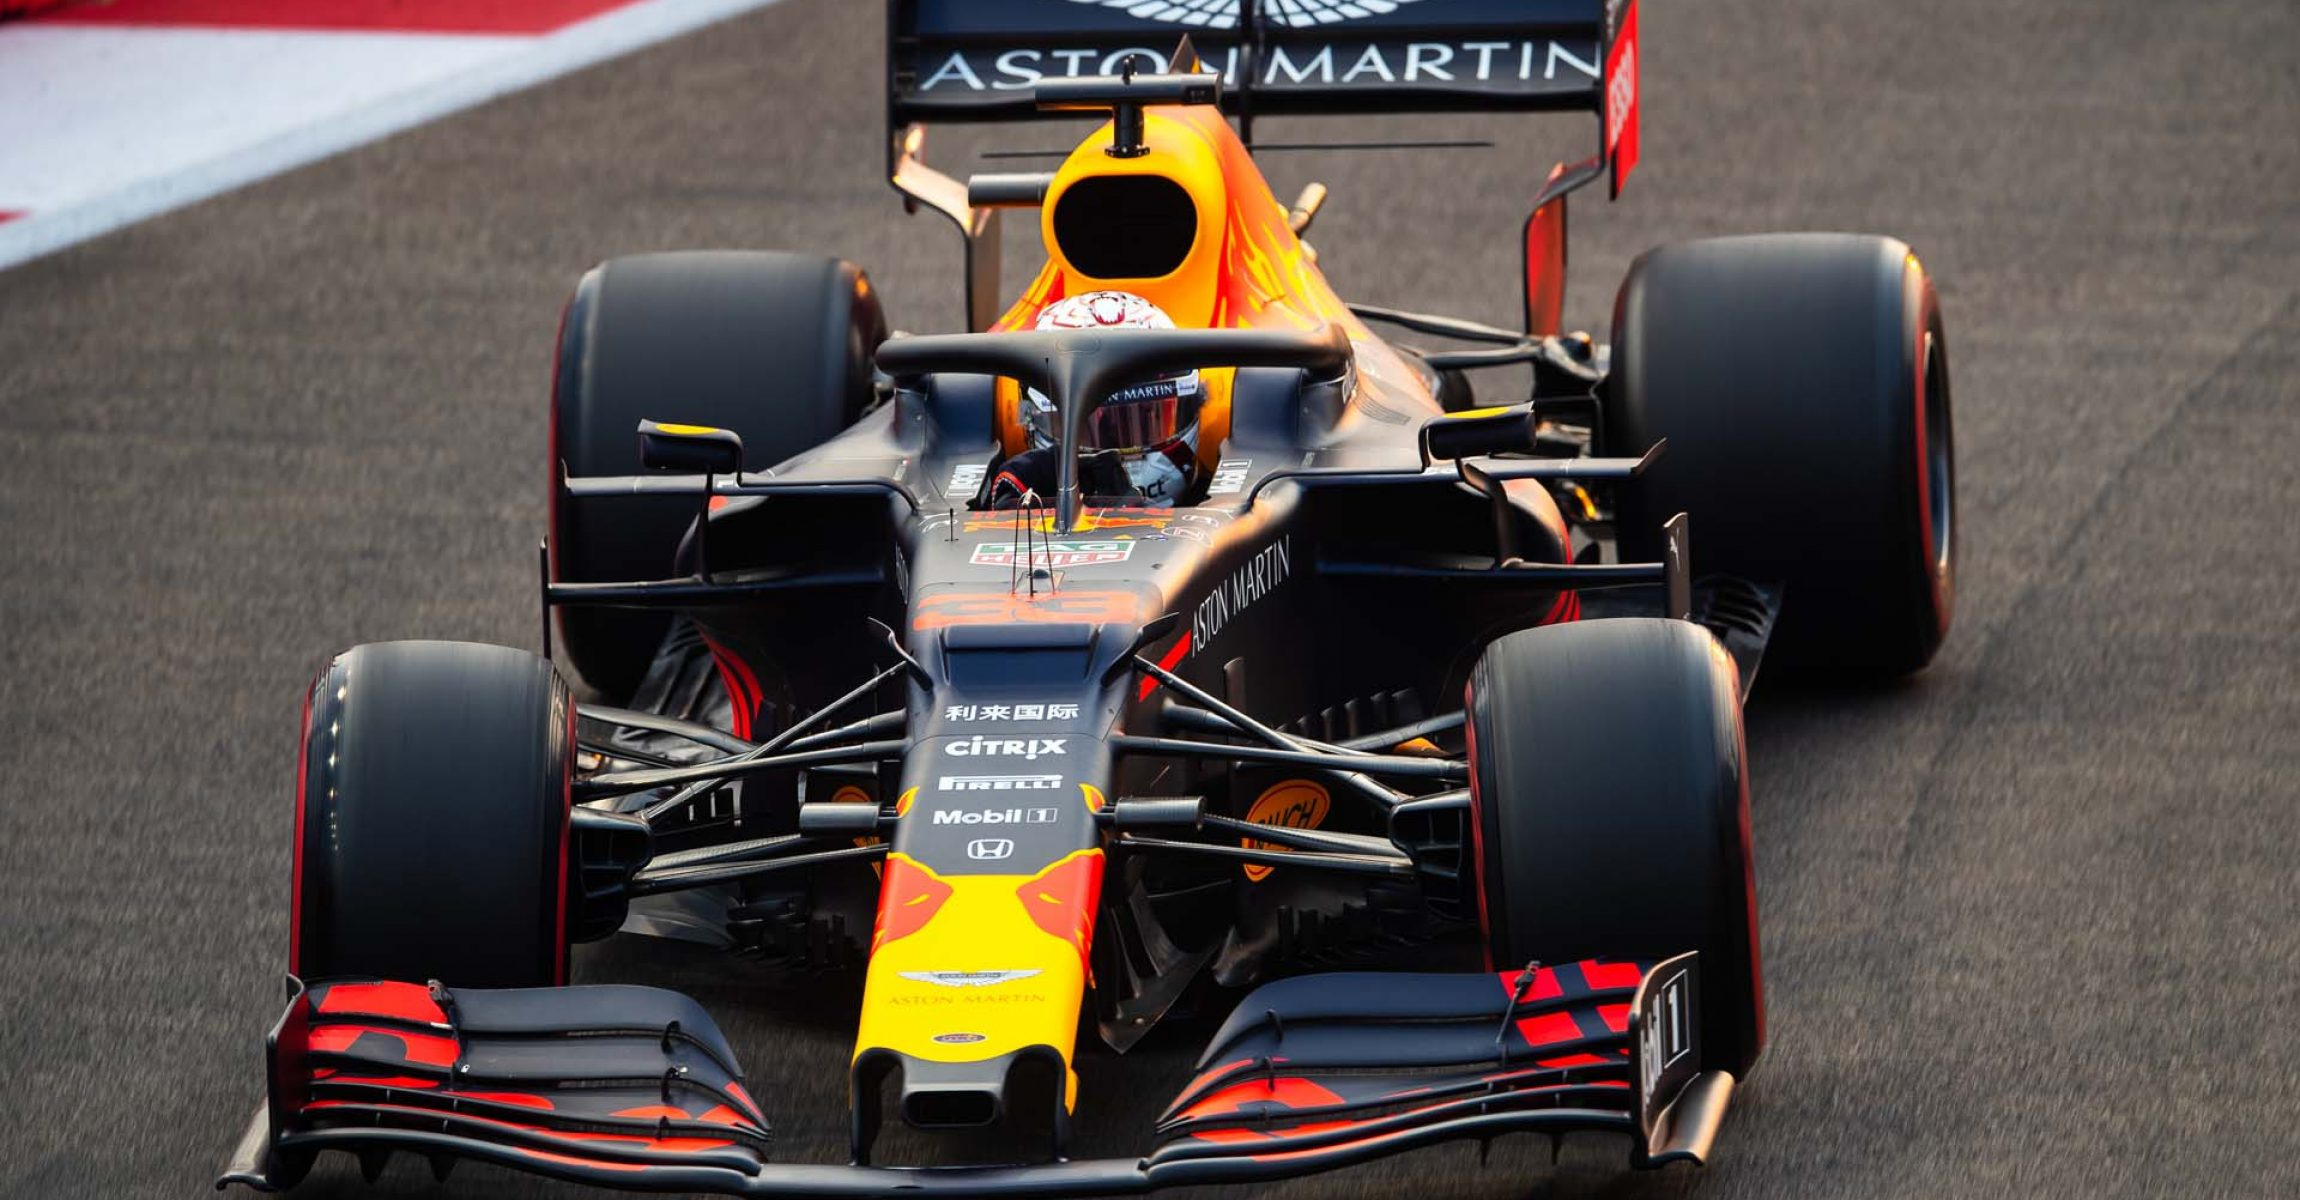 SINGAPORE, SINGAPORE - SEPTEMBER 21: Max Verstappen of the Netherlands driving the (33) Aston Martin Red Bull Racing RB15 on track during final practice for the F1 Grand Prix of Singapore at Marina Bay Street Circuit on September 21, 2019 in Singapore. (Photo by Lars Baron/Getty Images) // Getty Images / Red Bull Content Pool  // AP-21MYJCBXH1W11 // Usage for editorial use only //